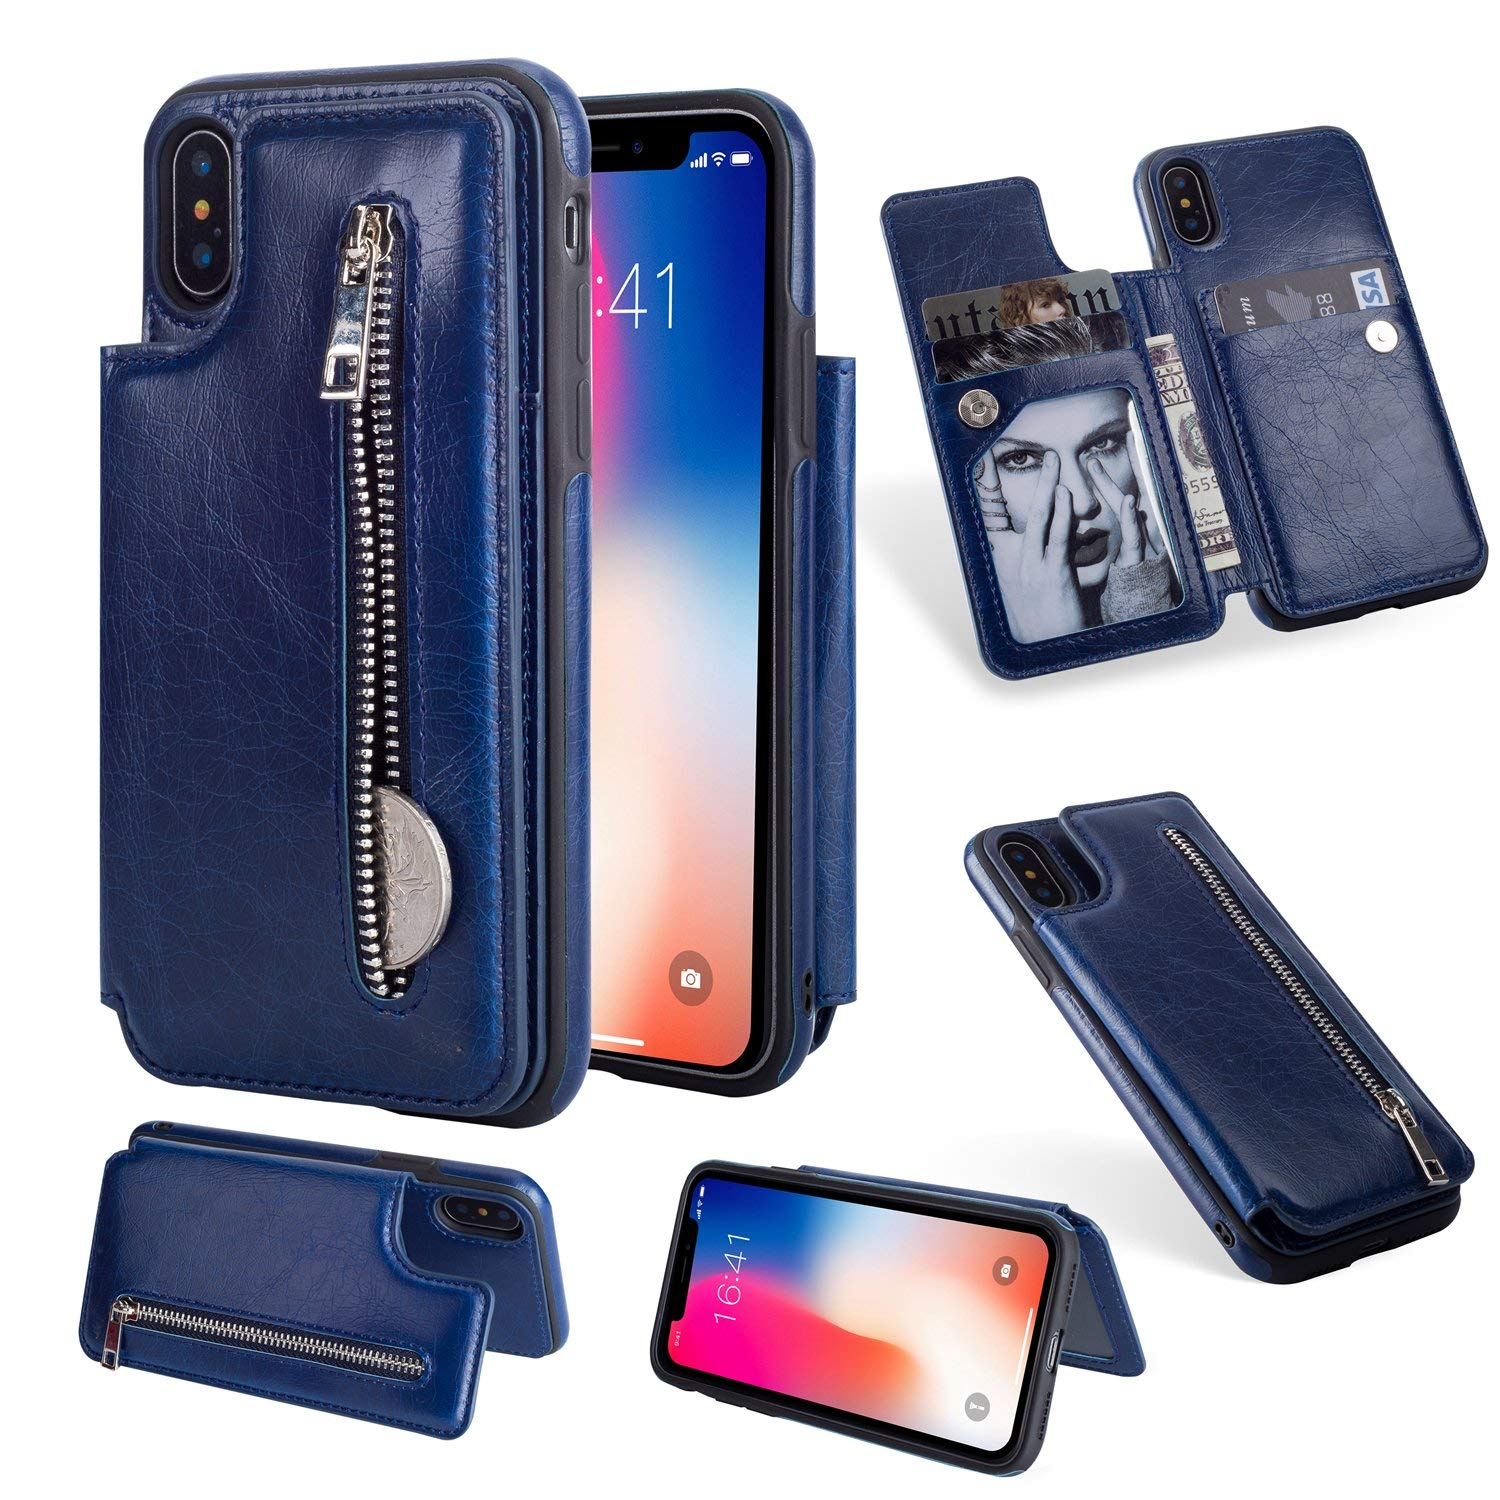 Jennyfly Galaxy Note 9 Cover, Fashion Button Magnetic Closure Wallet Design Premium Durable Leather Zipper Protective Cover with Card Slots & Money Pocket for 2018 Galaxy Note 9 6.4'' - Blue by Jennyfly (Image #1)